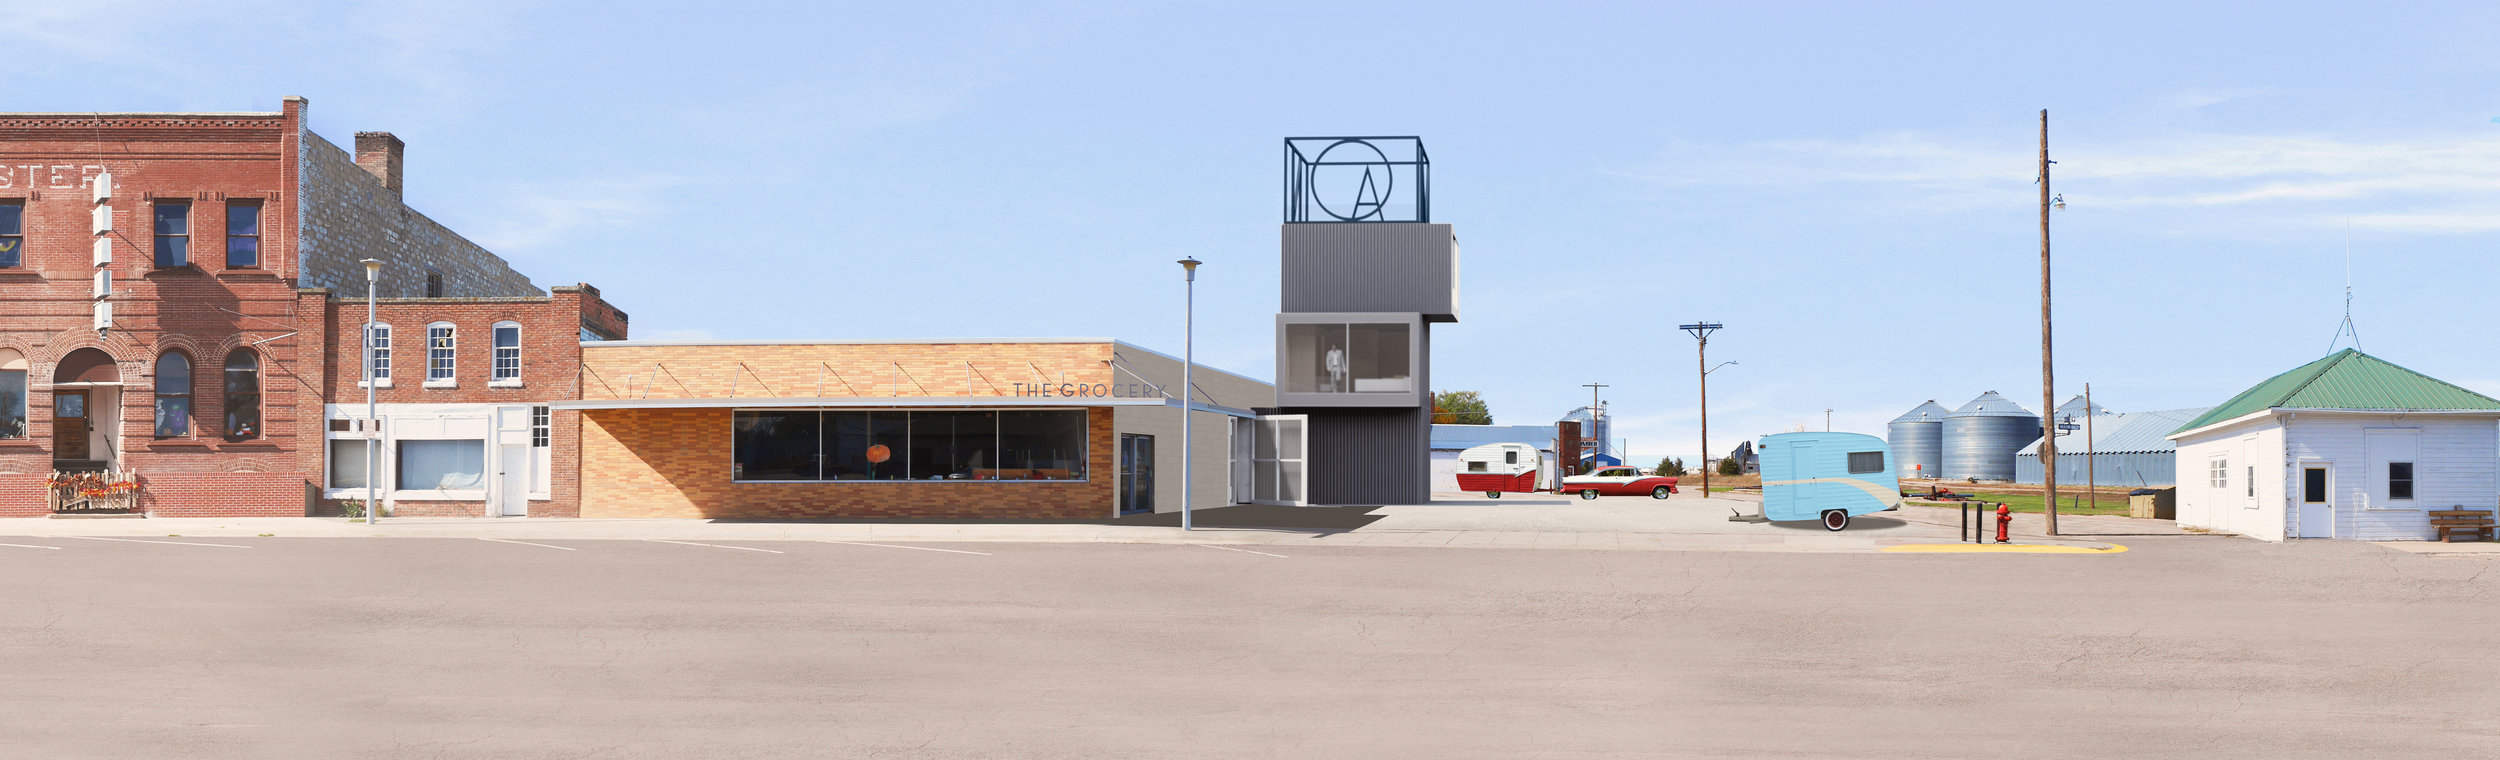 F14.1Store_East Photomontage_18_0519aw.jpg